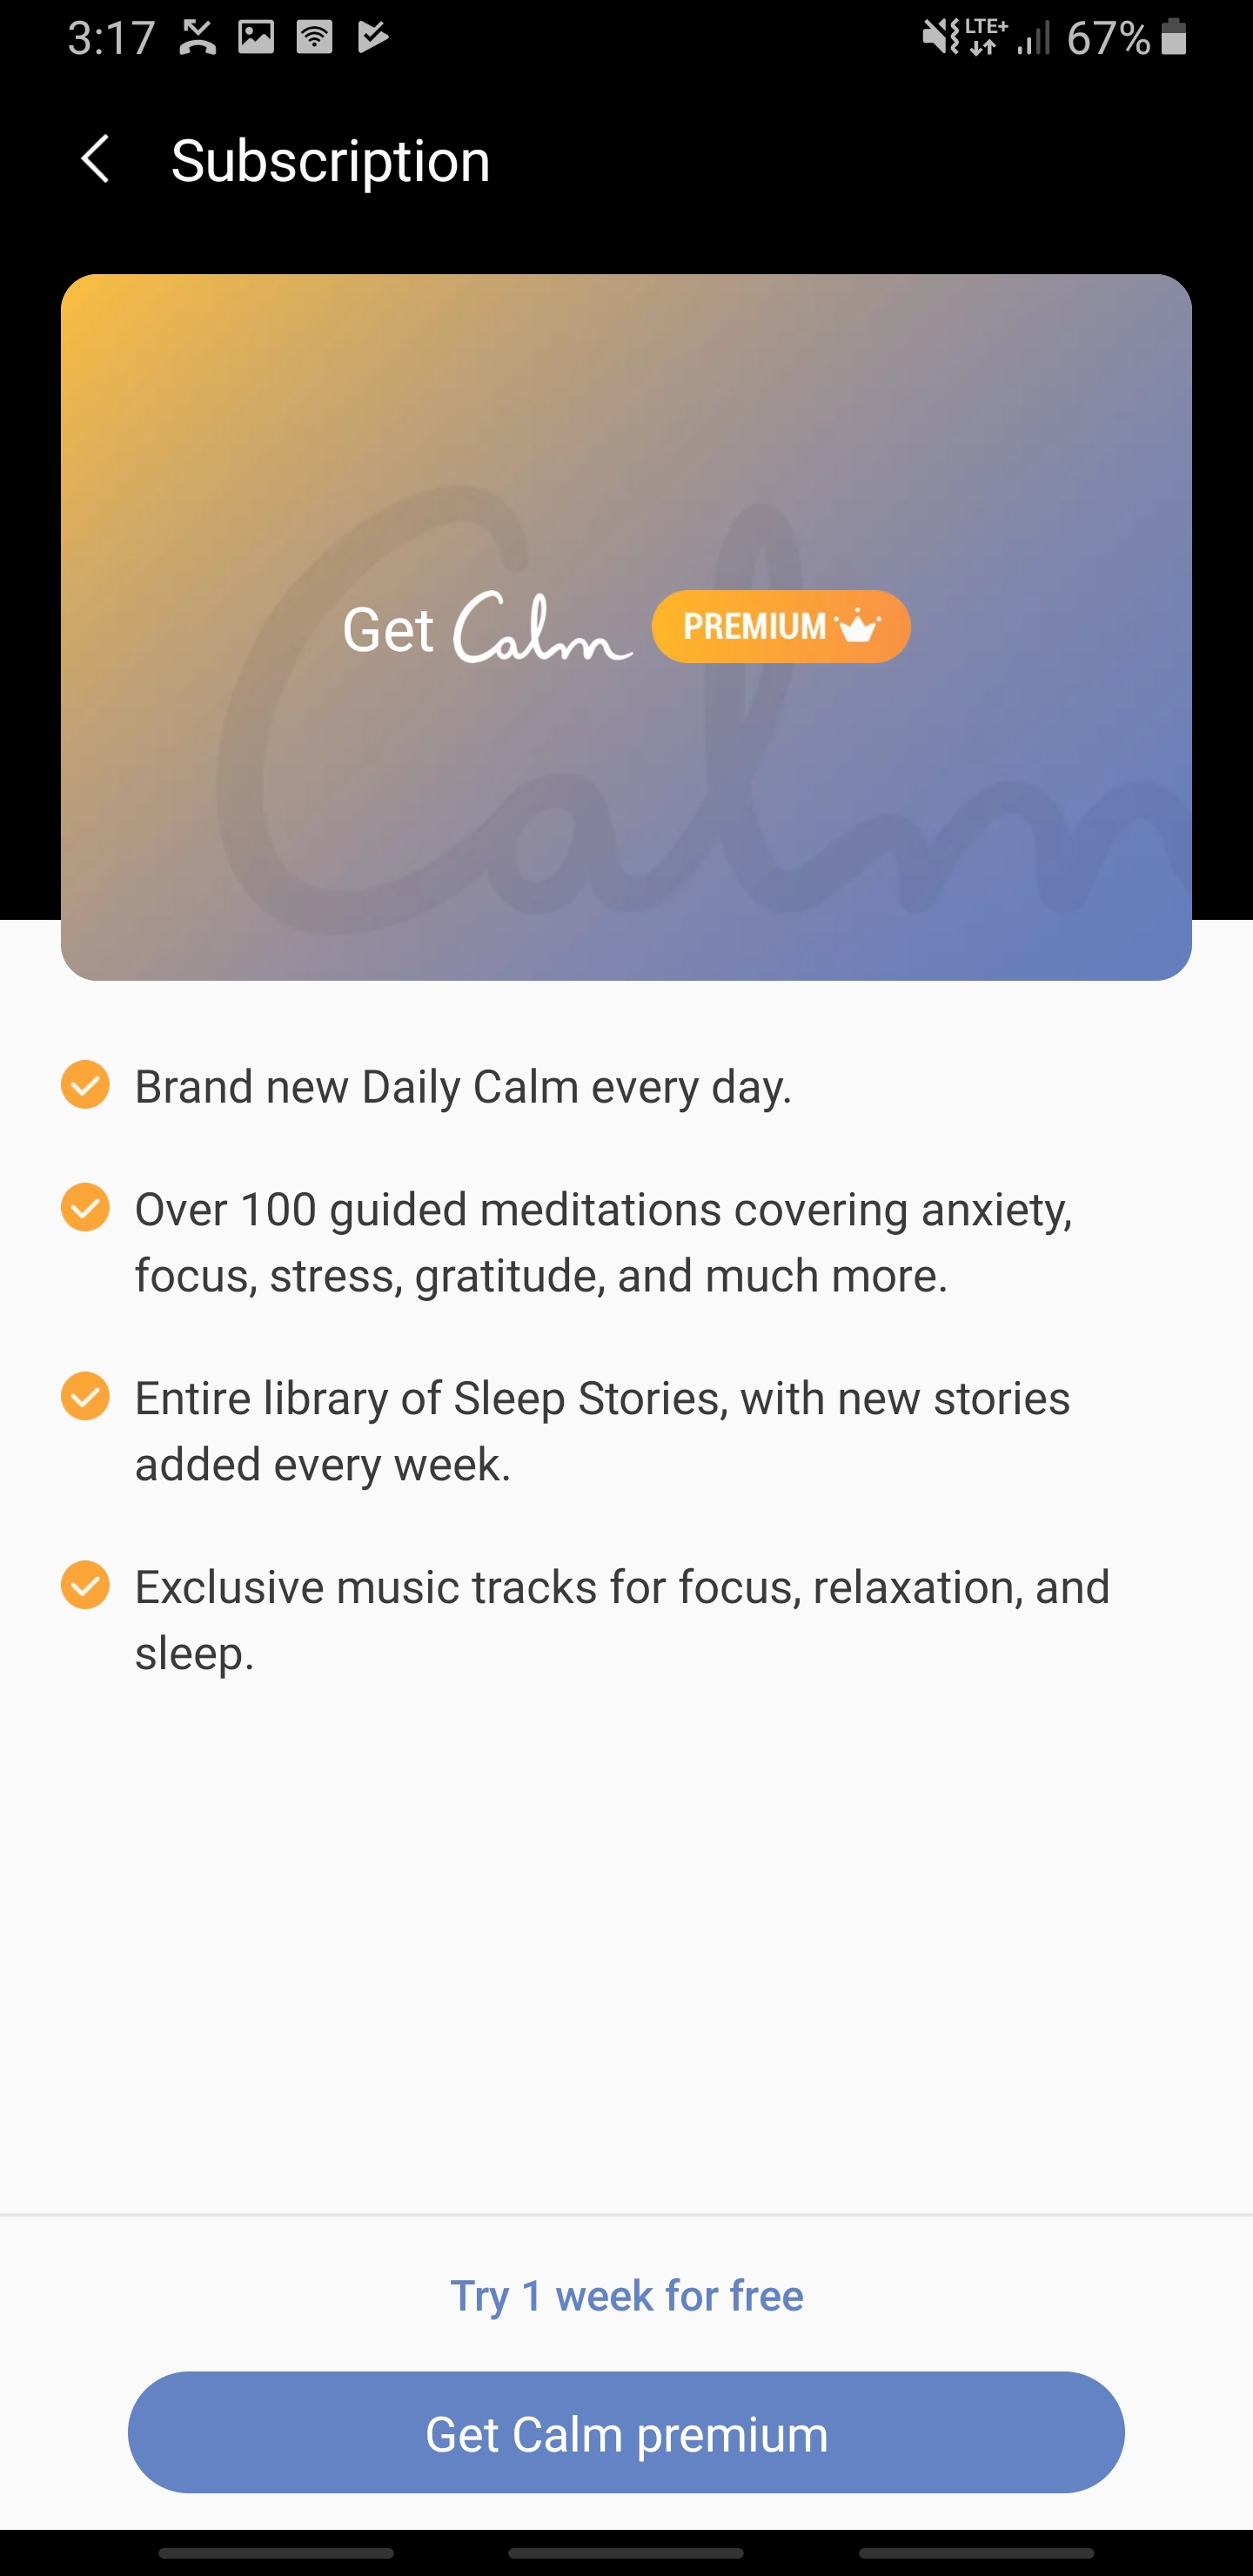 Samsung Health wants you to chill out with the help of new Calm